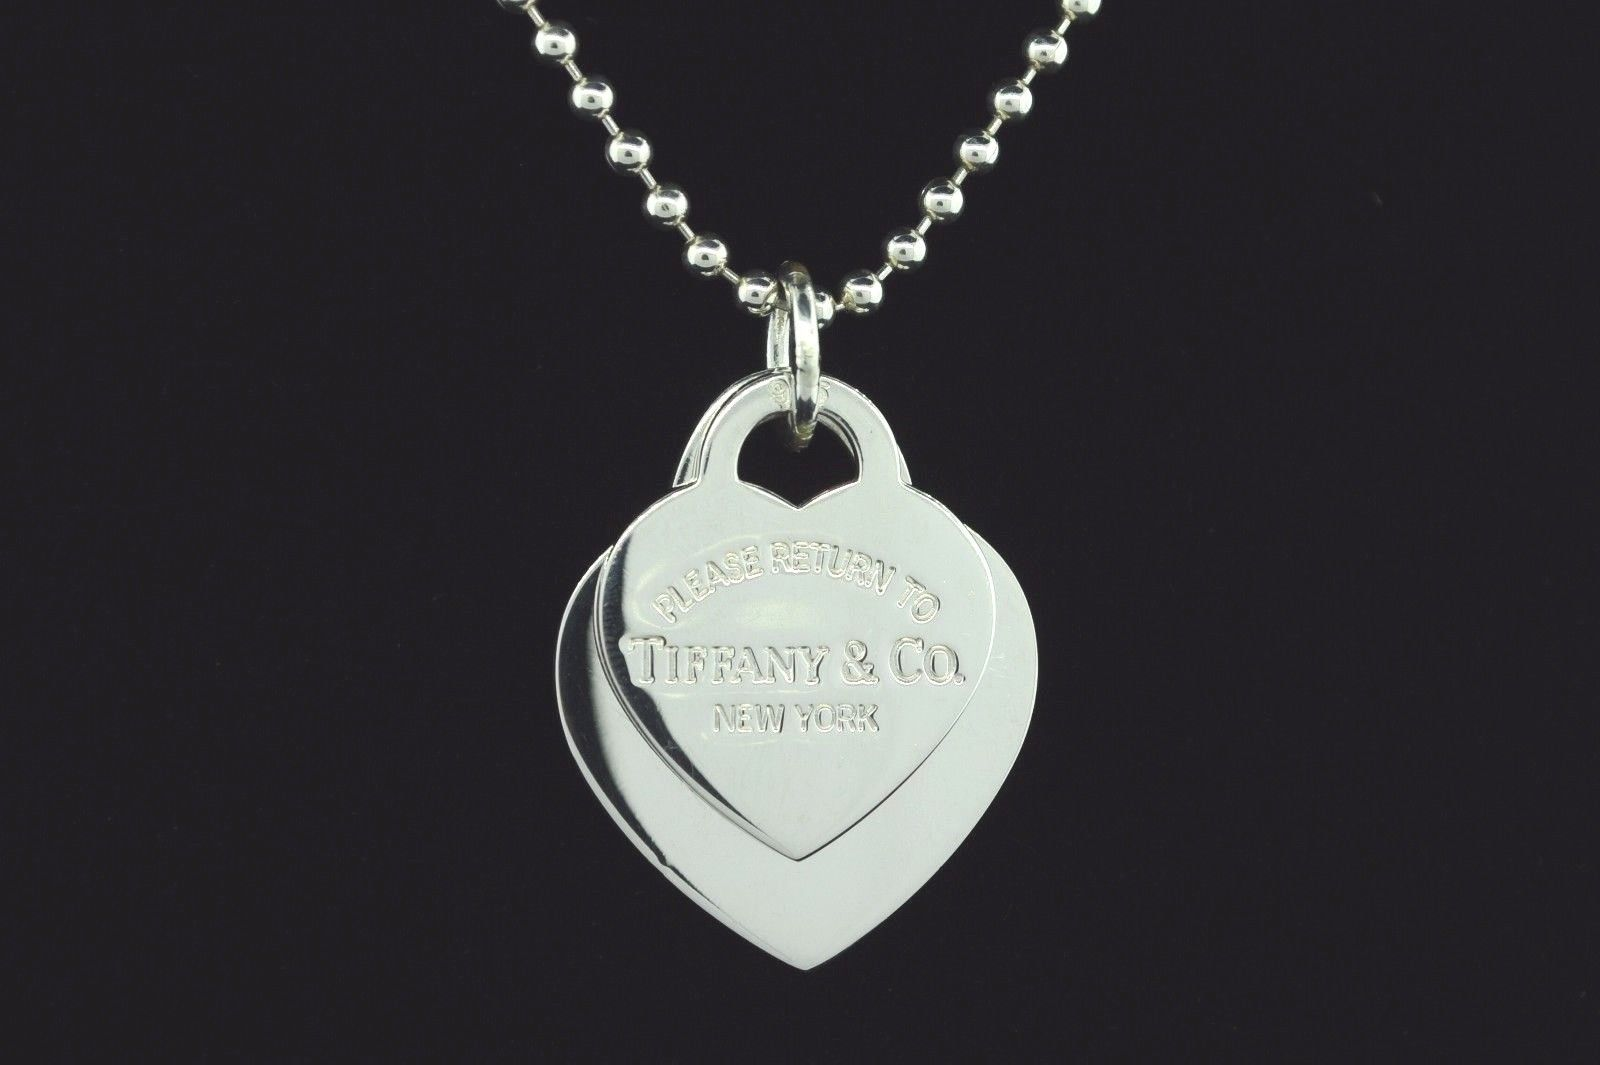 TIFFANY & CO. Sterling Silver  Medium Return To Tiffany & Co. Double Heart 24""